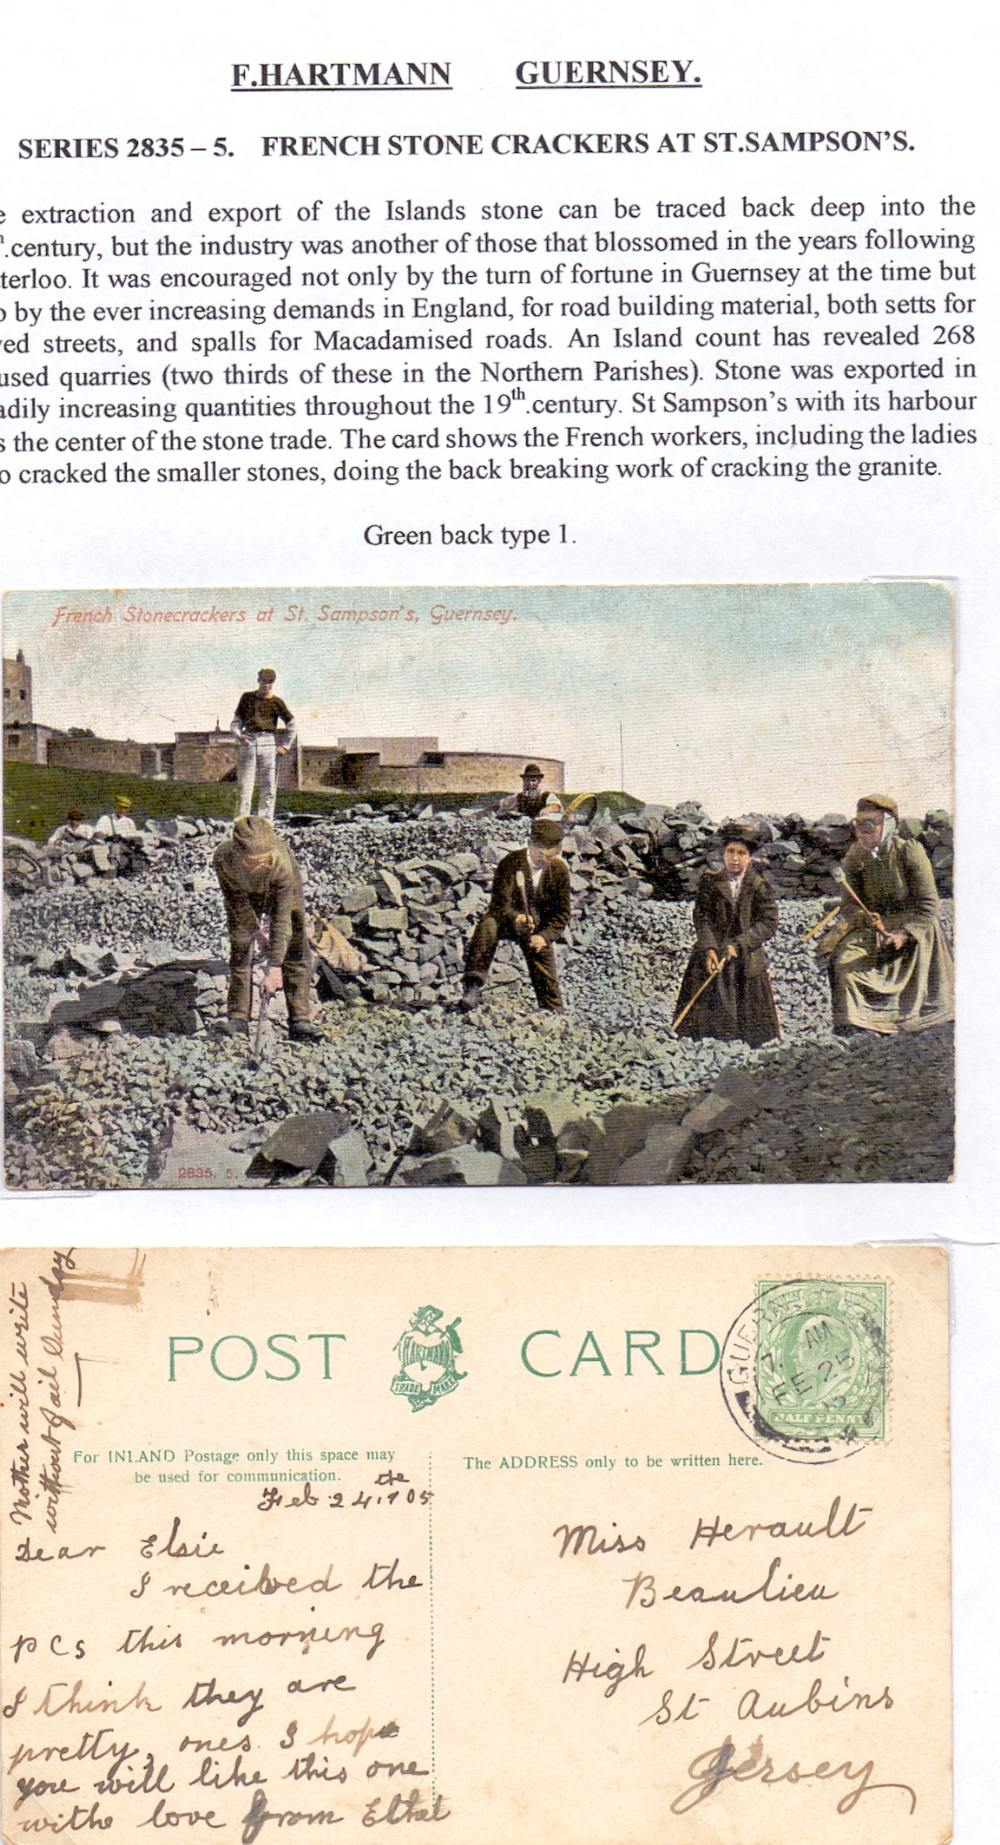 Lot 147 - POST CARDS : Edwardian actors and actres